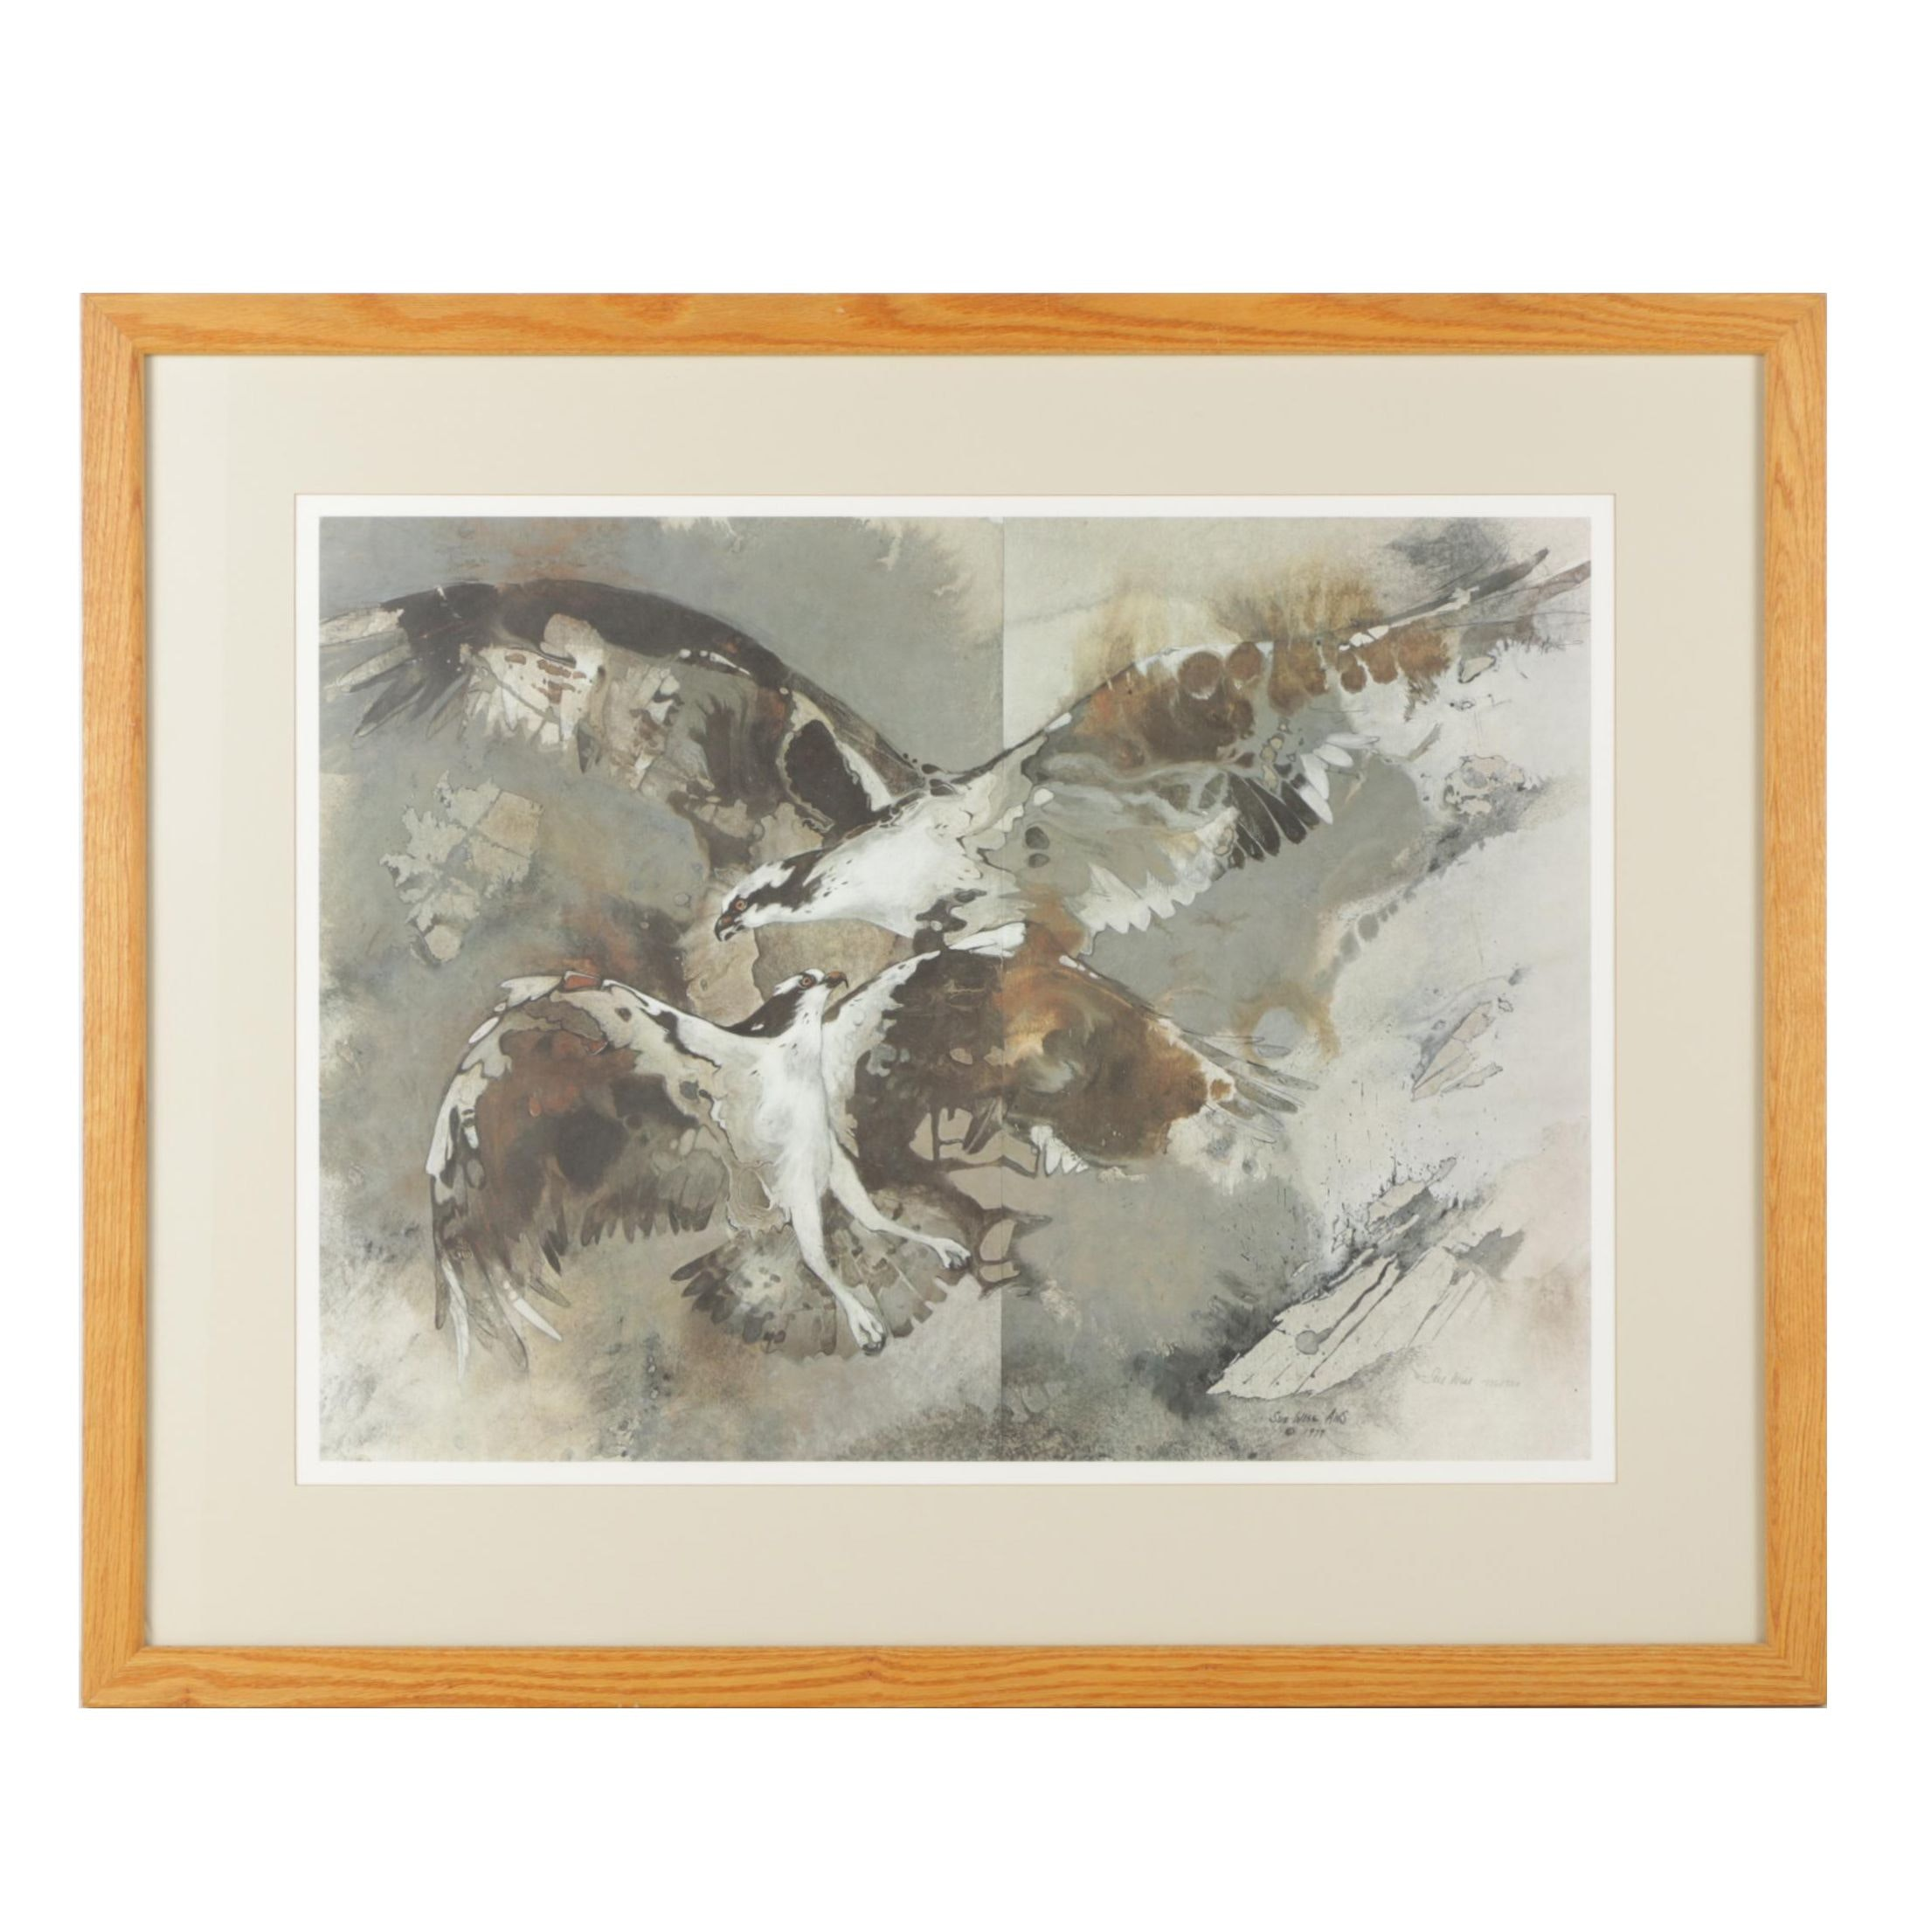 "Sue Wise 1980s Limited Edition Offset Lithograph ""Courtship"""